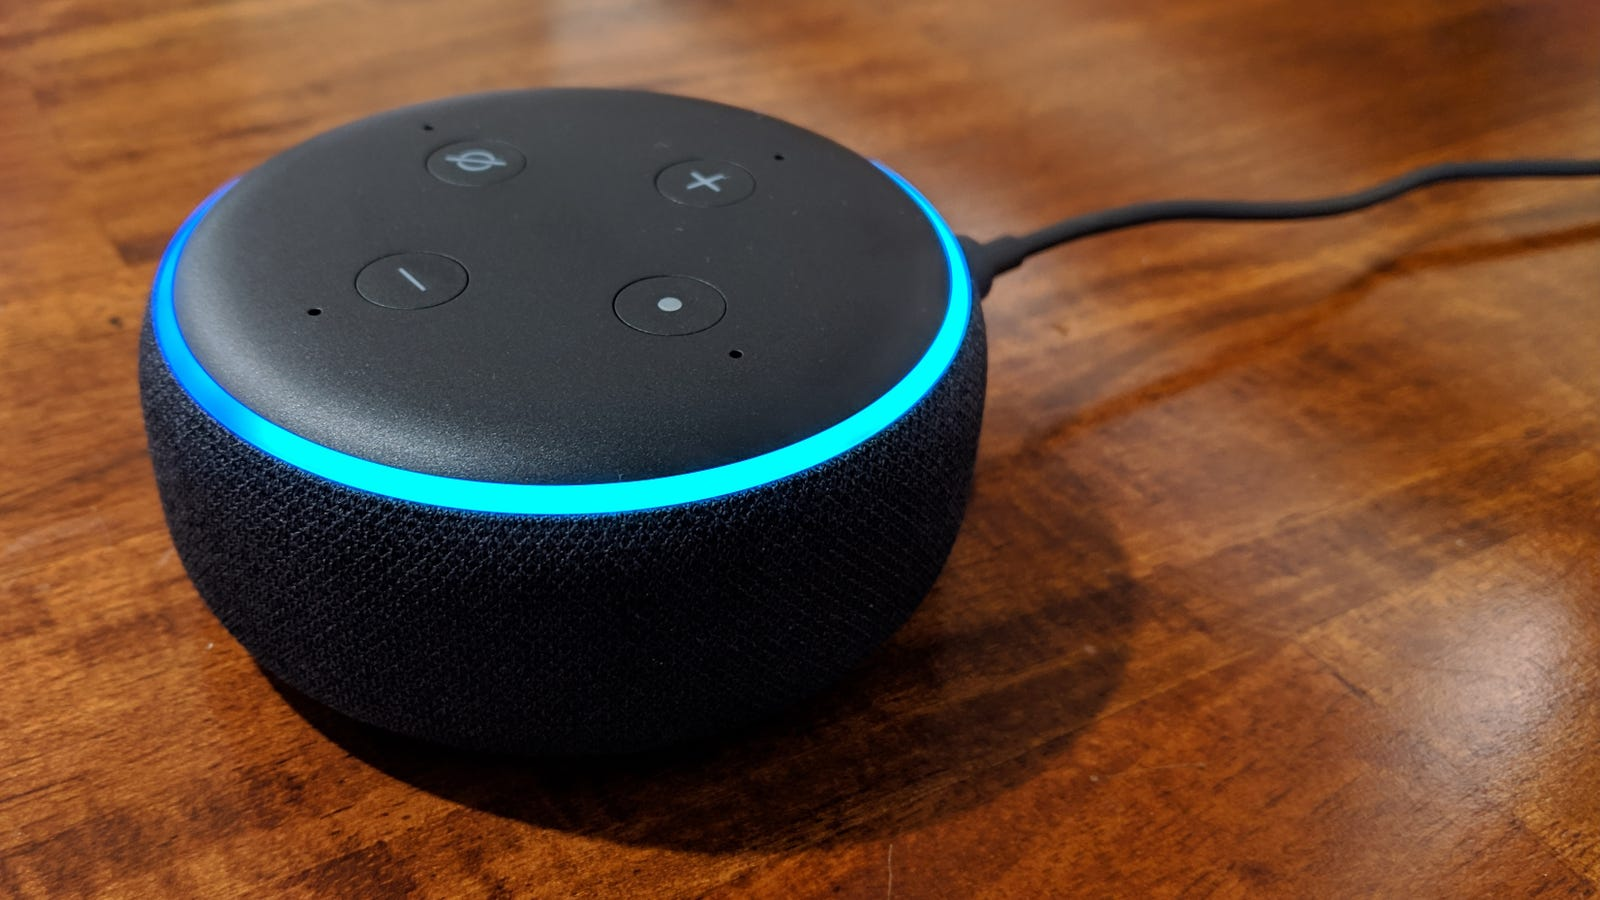 How to Stop Your Roommates from Messing with Your Amazon Echo